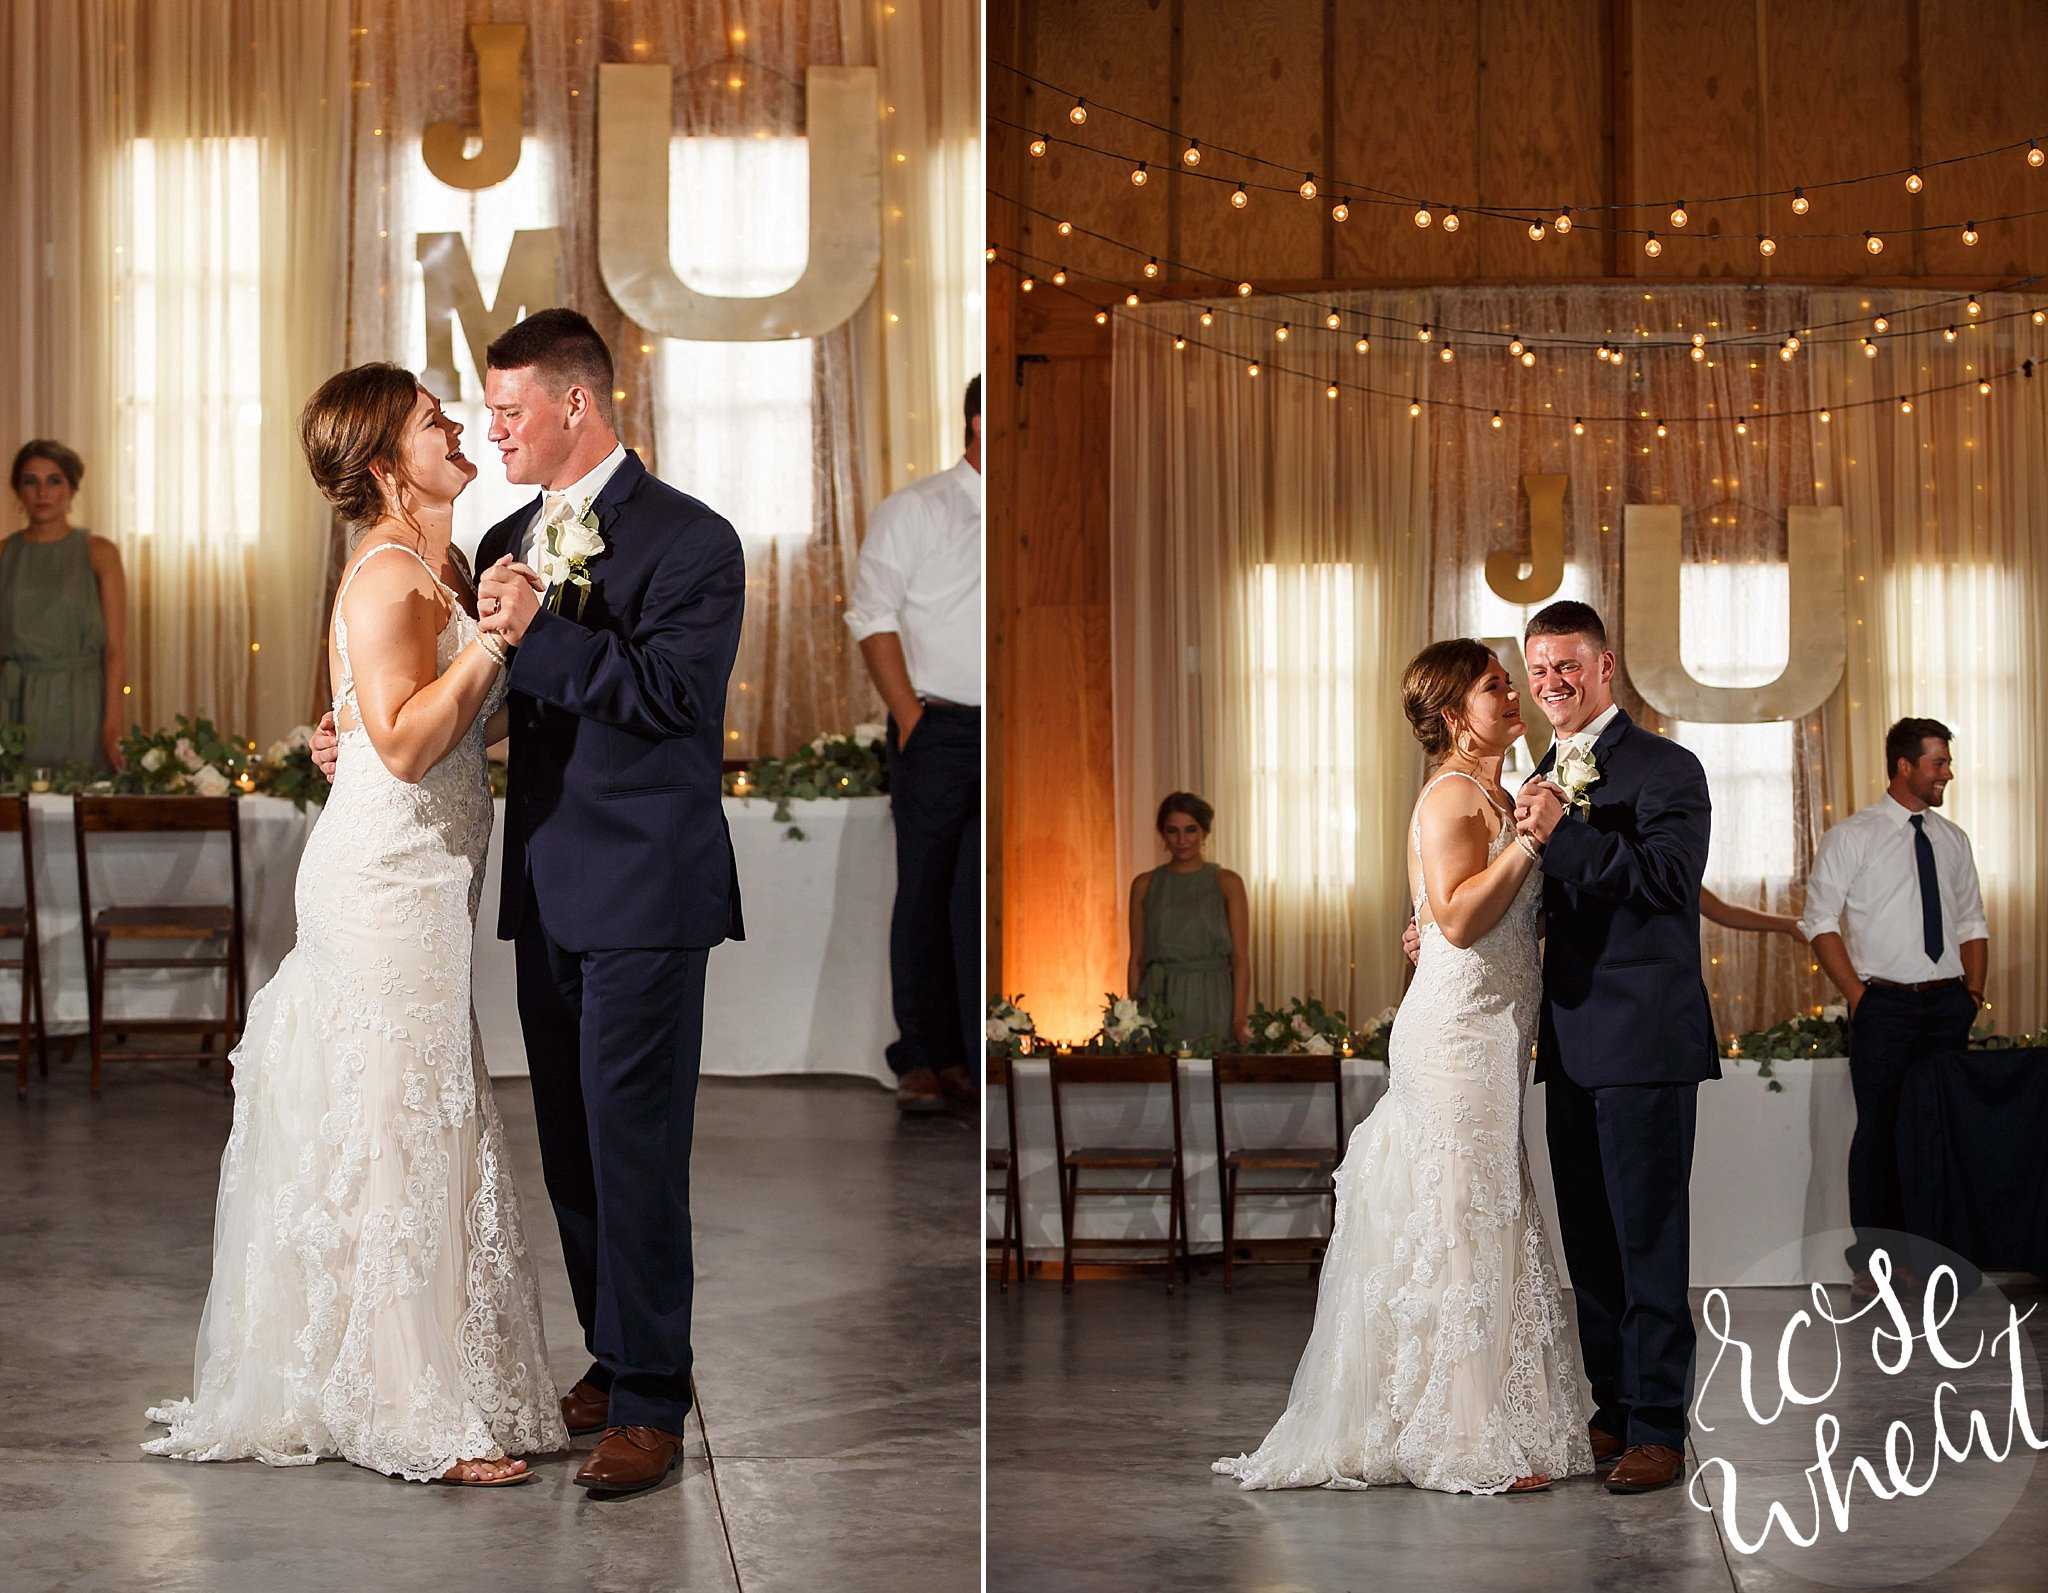 Bellwether_Barn_Wedding-033.JPG